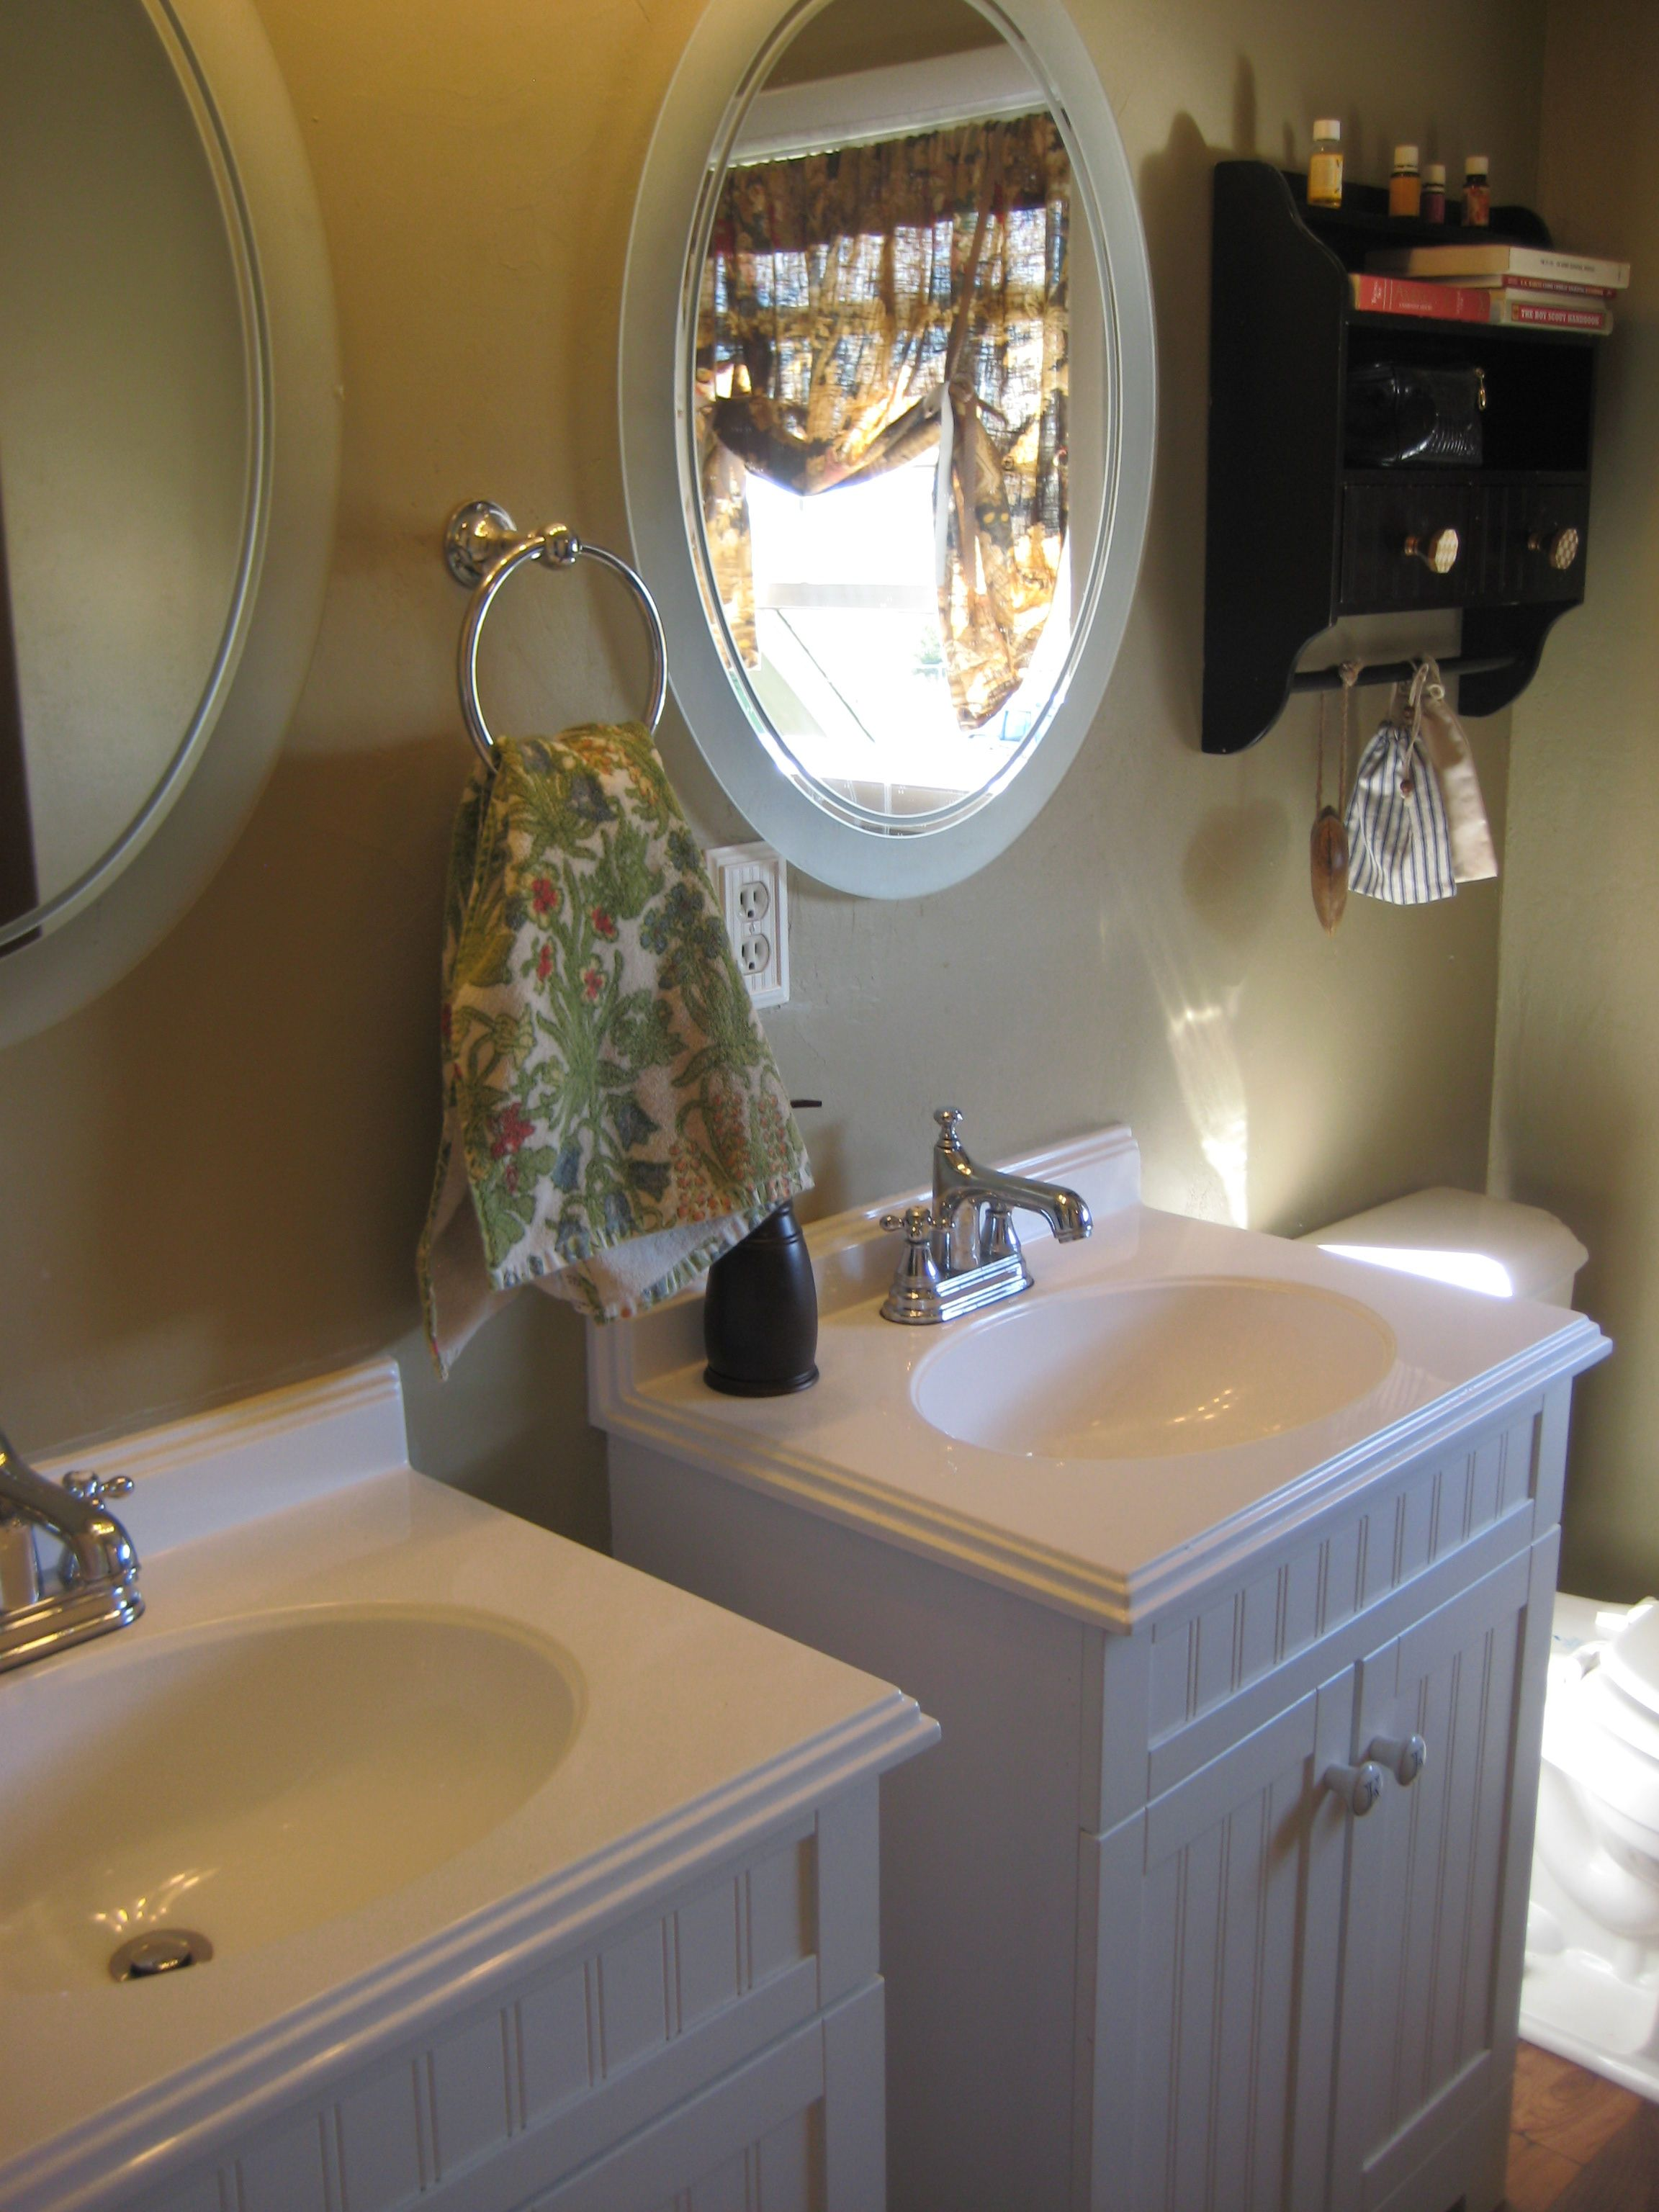 Our small bath, small twin discount lowes vanities saved tons of ...